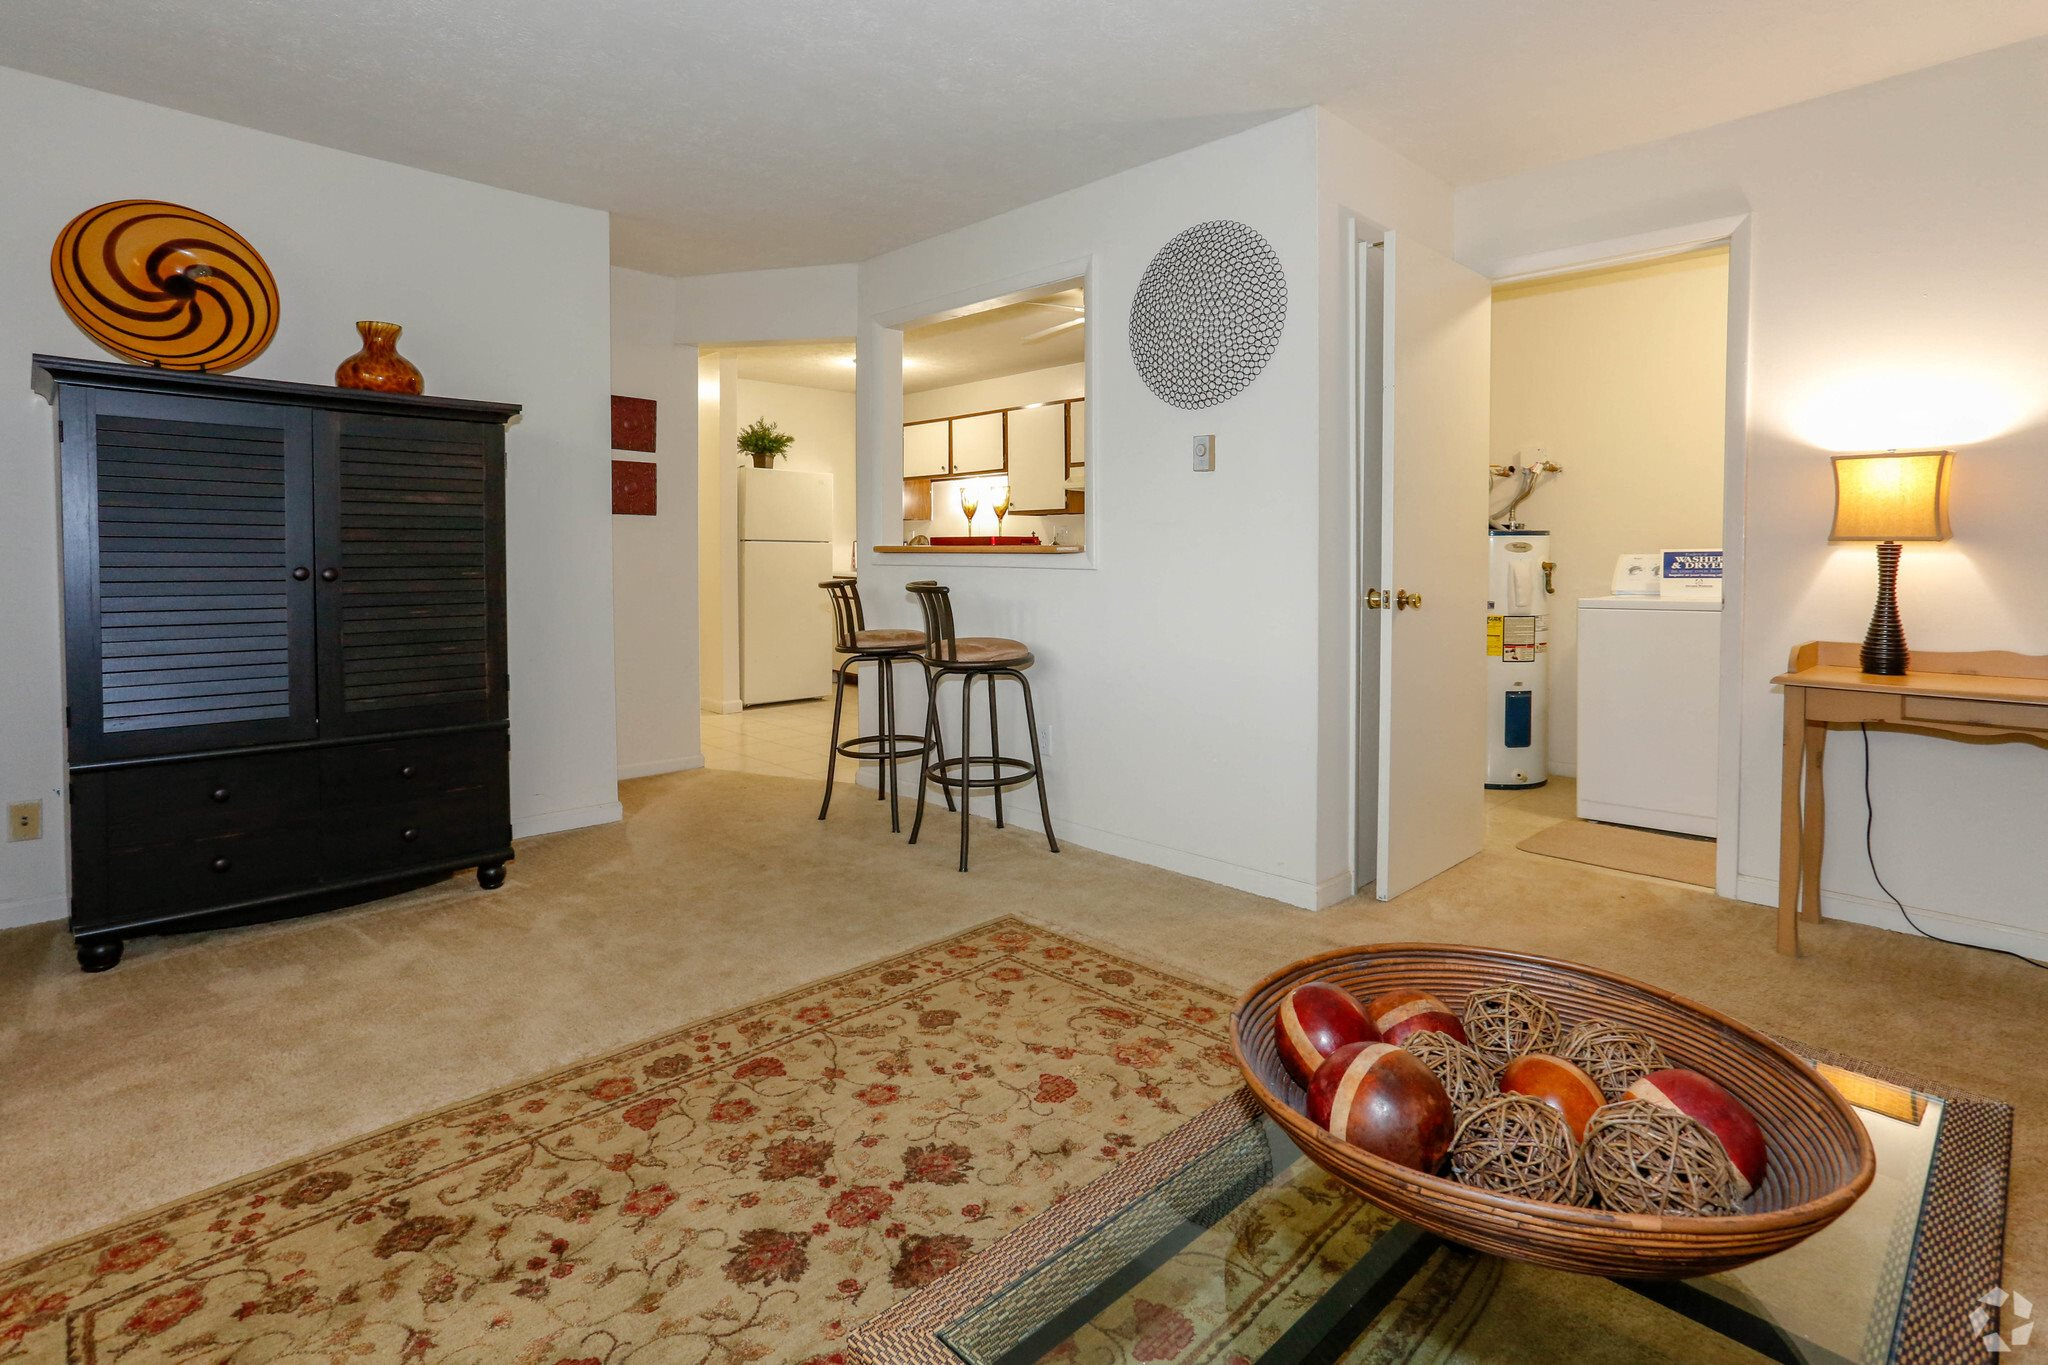 2 bedroom at Meadowrun Apartments in Fairborn, OH